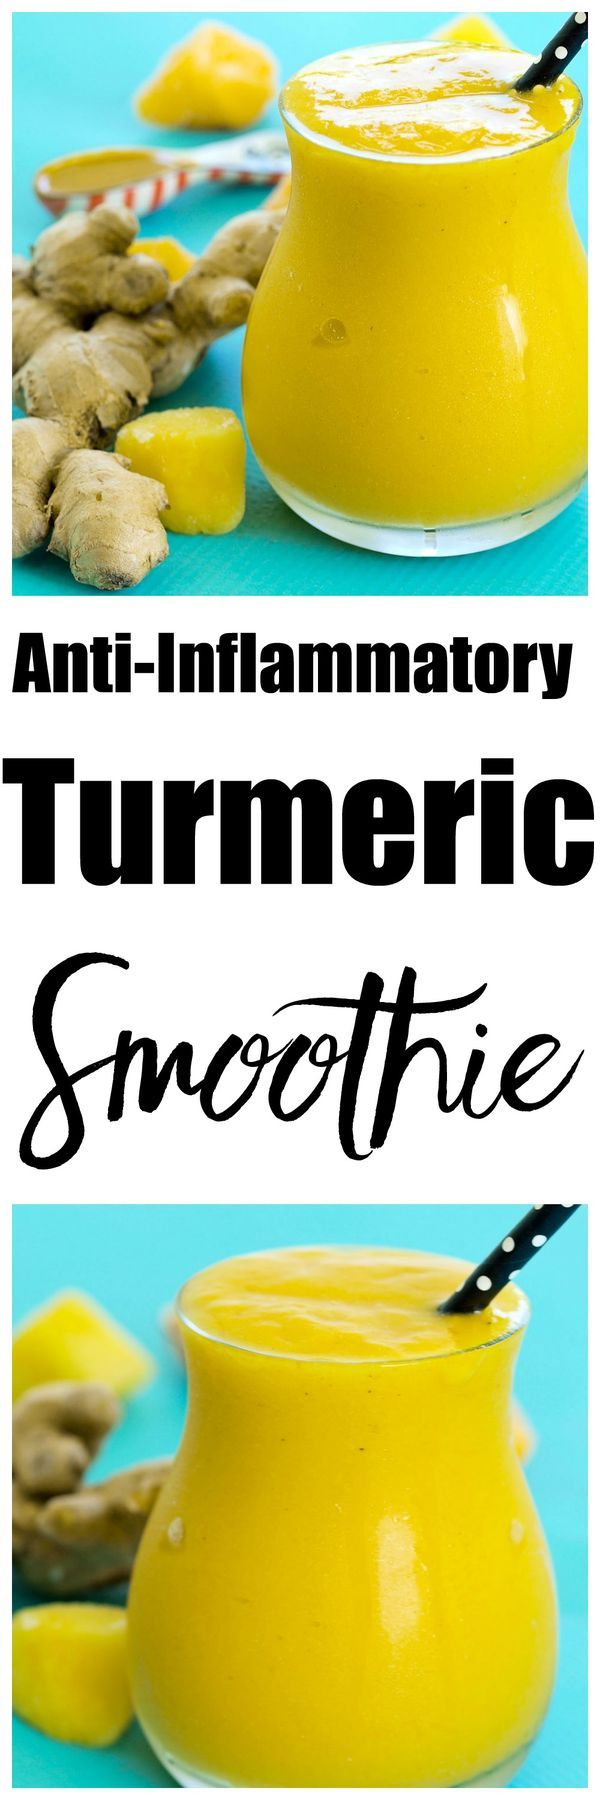 Reduce inflammation with this anti-inflammatory turmeric smoothie recipe. This healthy smoothie recipe is great for breakfast or snack. Turmeric might become one of your most favorite foods--get it into your diet with this smoothie!